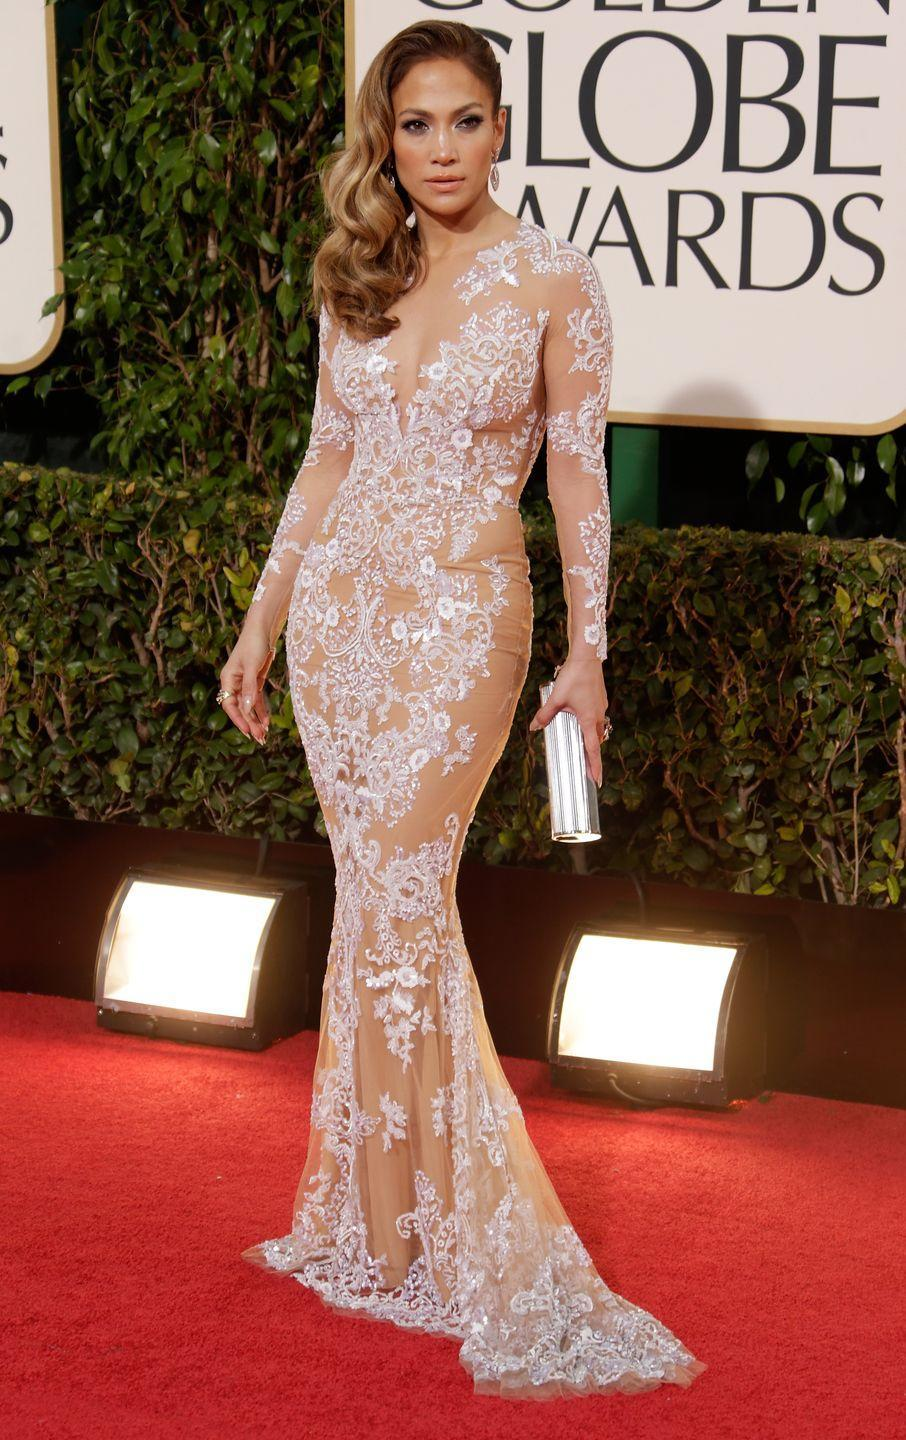 <p><strong>When: </strong>January 2013</p><p><strong>Where: </strong>The Golden Globes</p><p><strong>Wearing: </strong>Zuhair Murad</p>